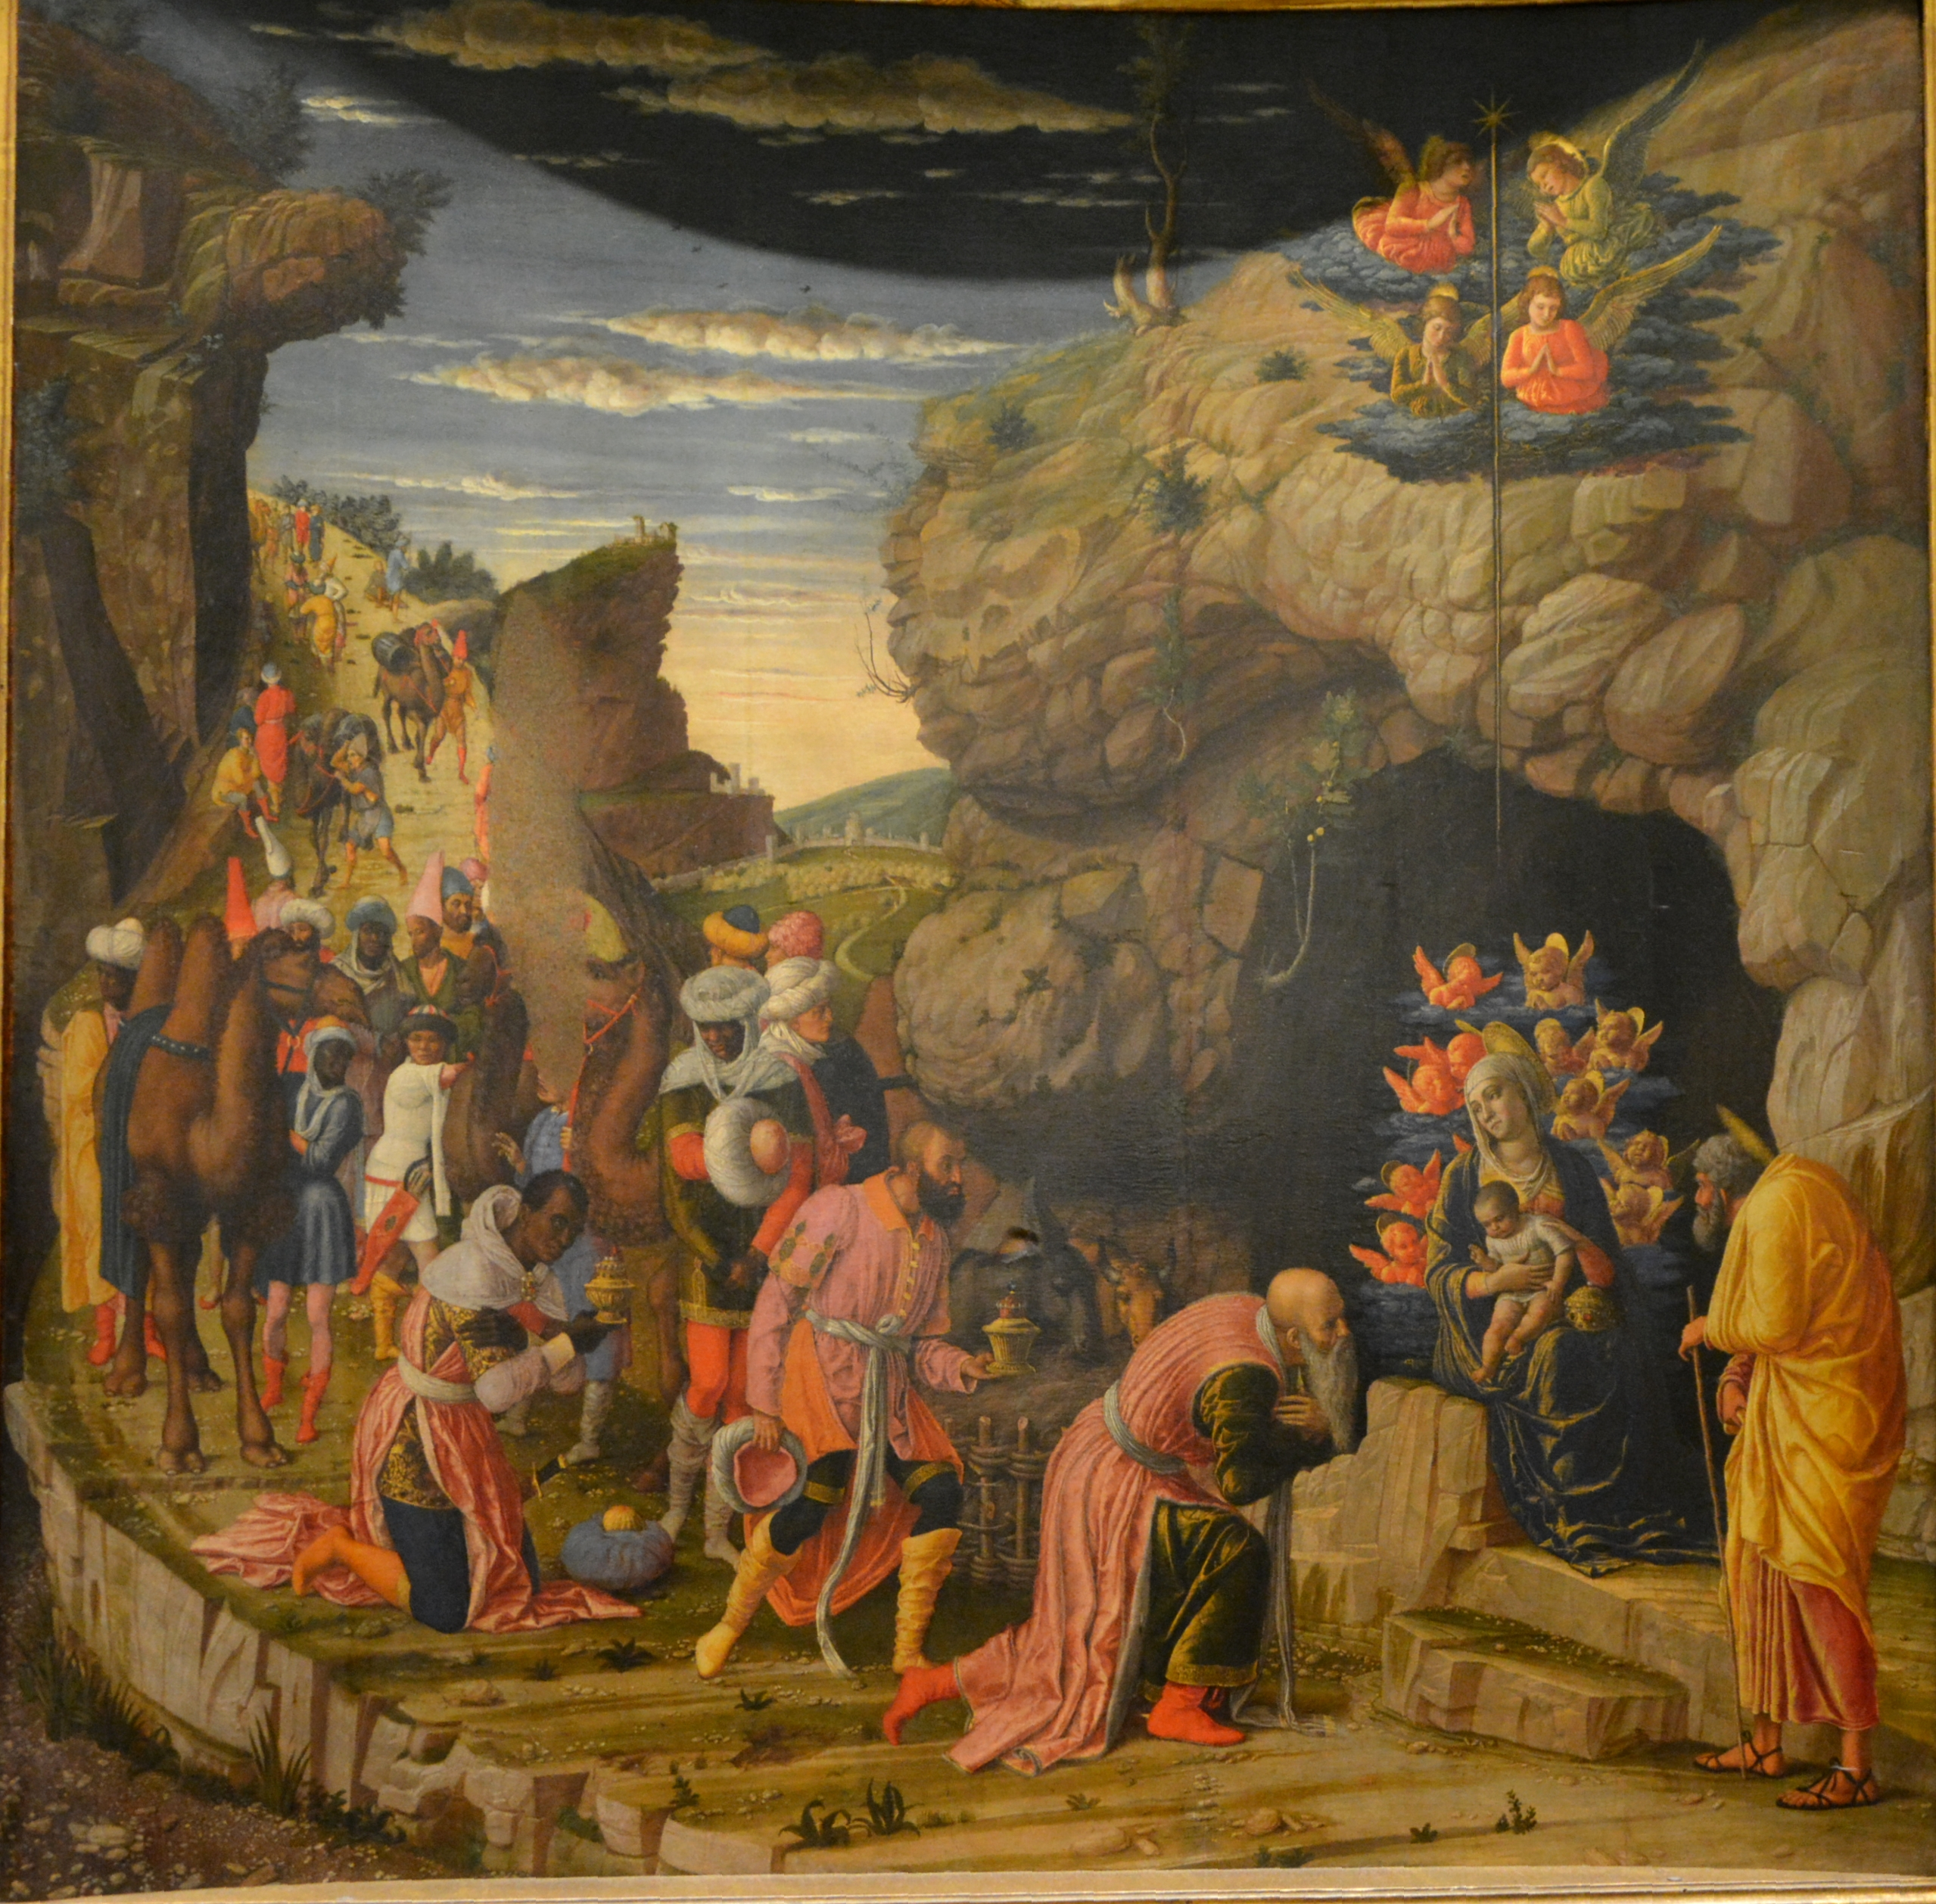 Adoration of the Magi